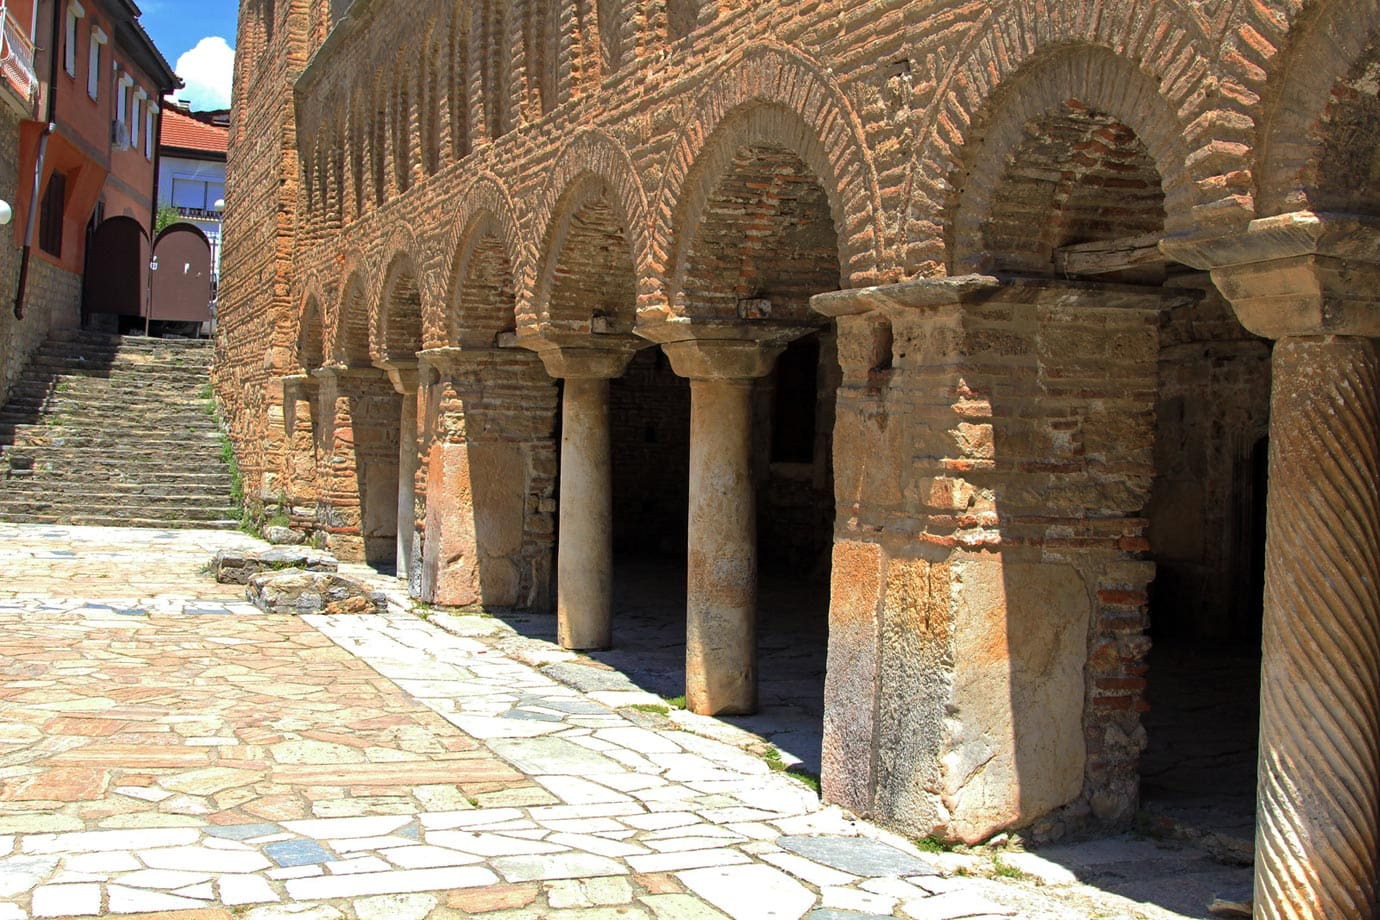 Ohrid is another ancient Roman city that dates back over 2,000 years